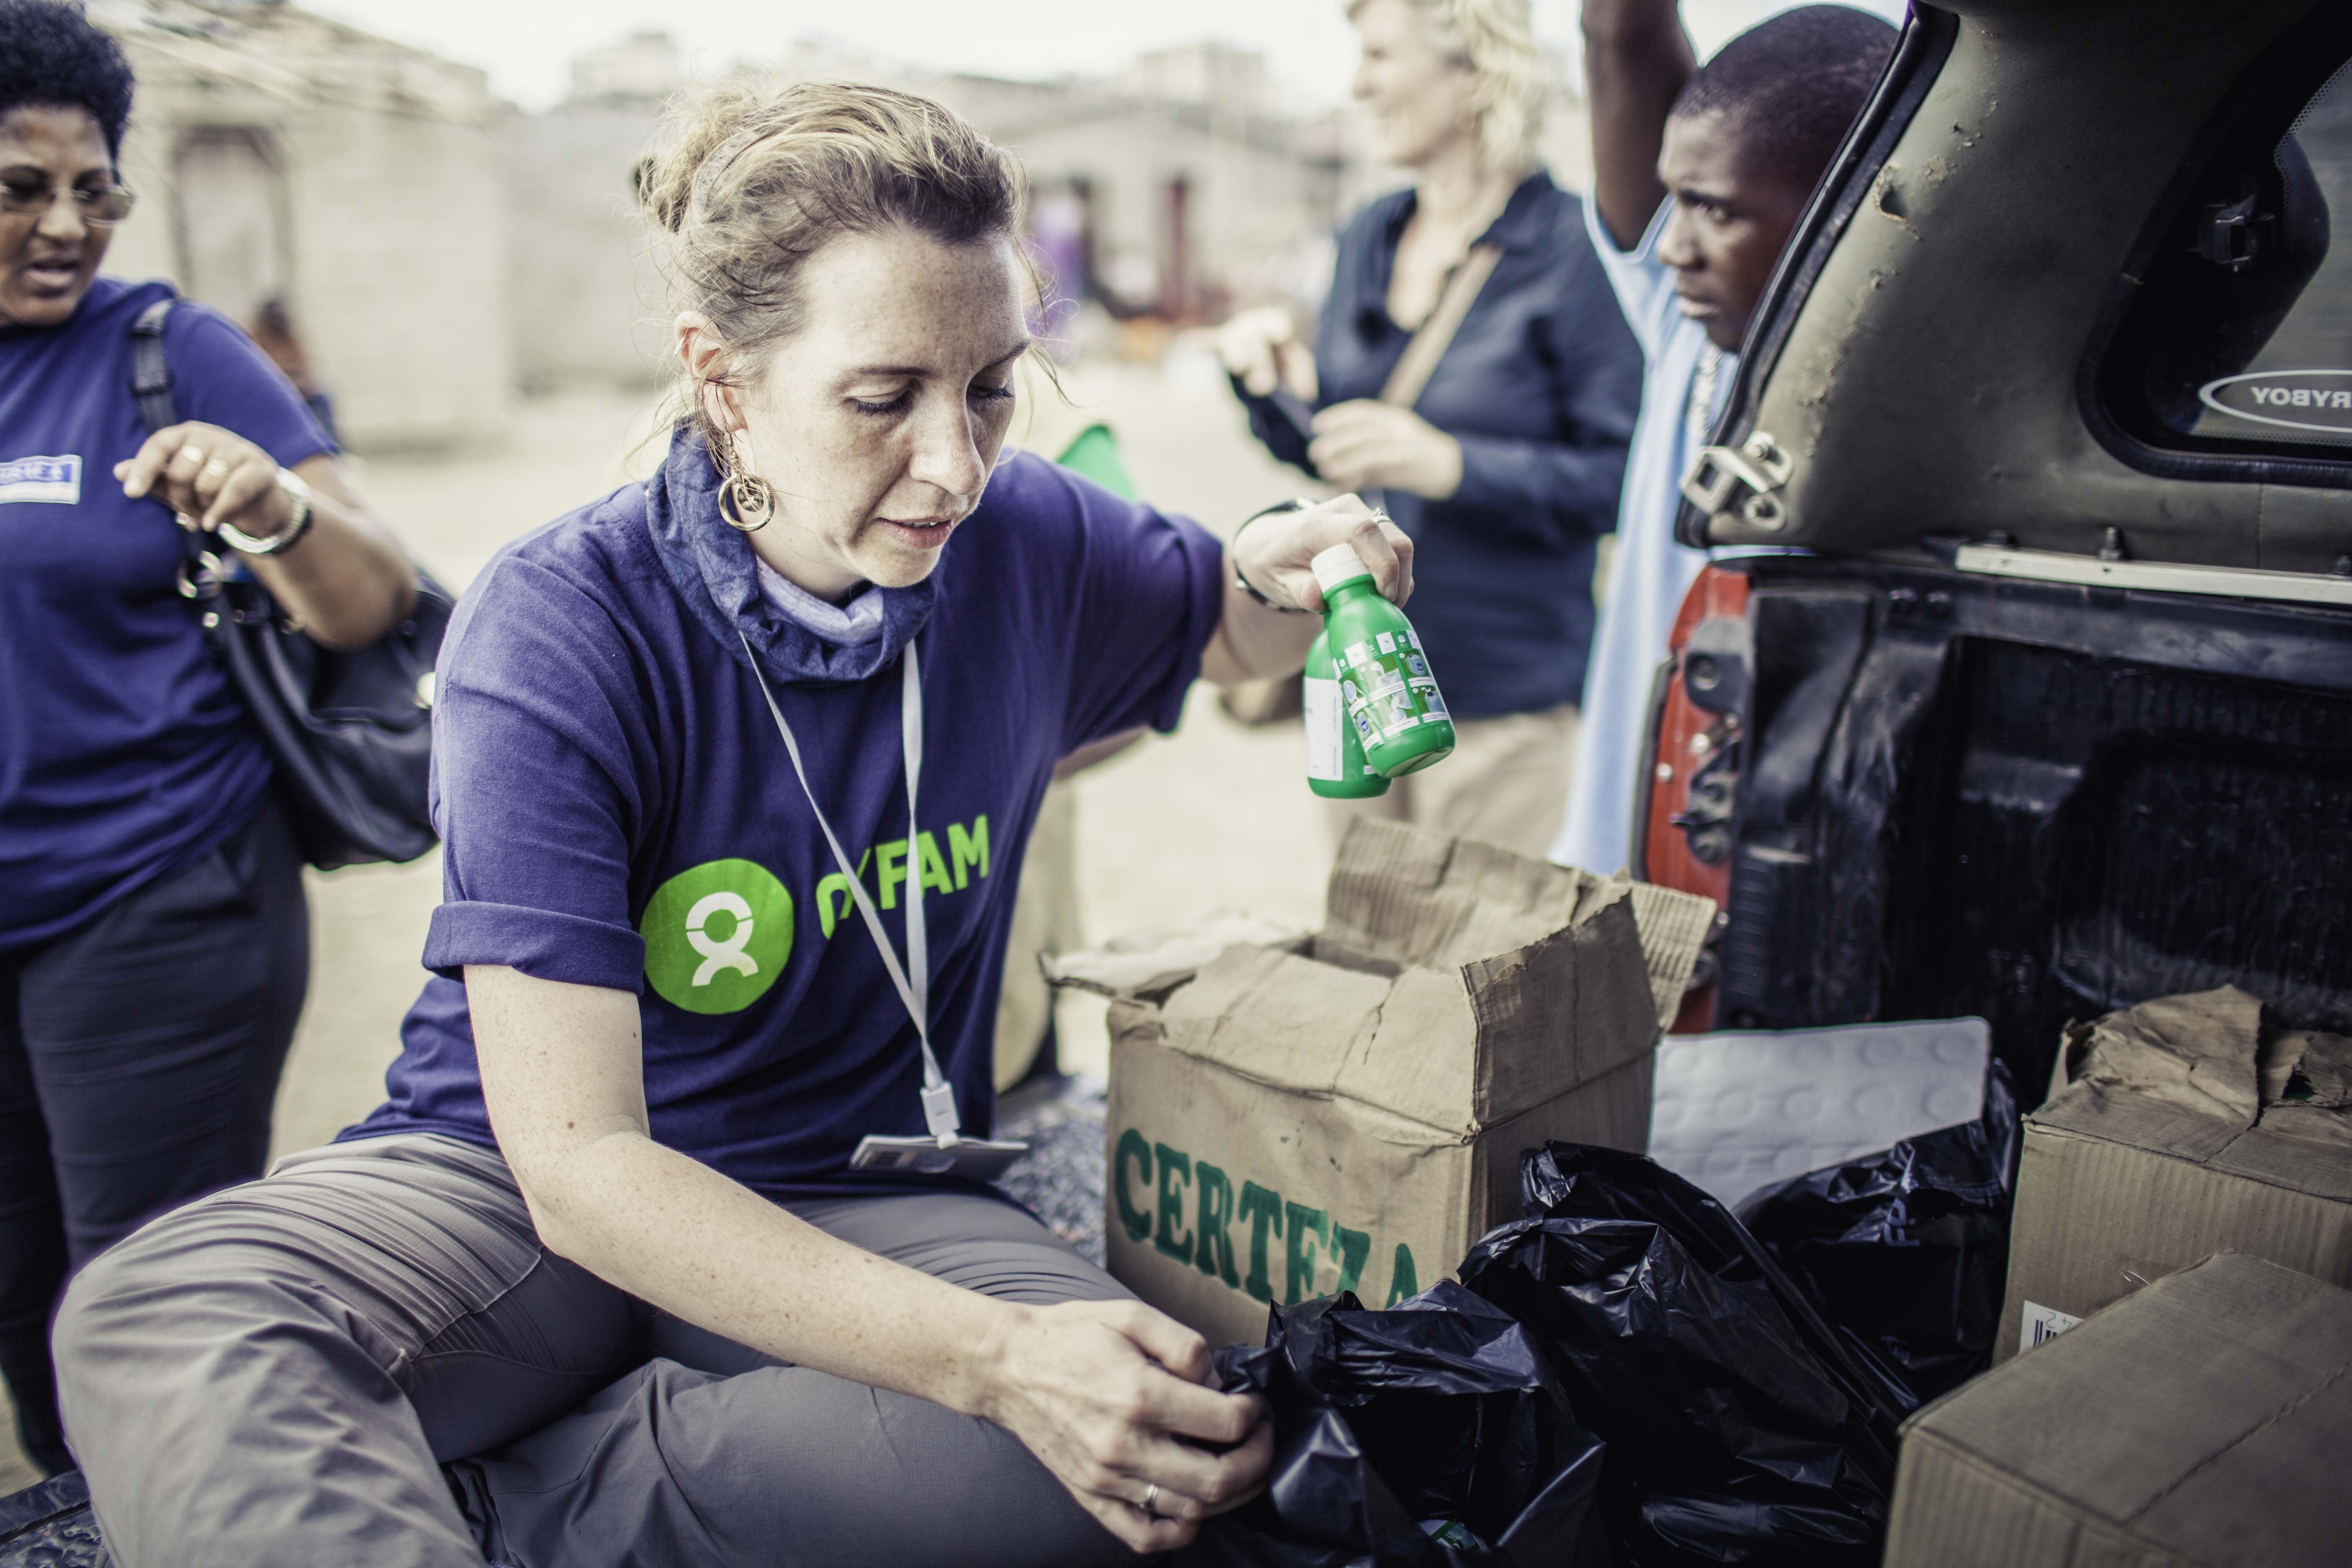 Michelle, public health promotion advisor, packing chlorine bottles for households in Mozambique. One drop will disinfect a jerry can of 20 litres of water. (Photo: Micas Mondlane / Oxfam Novib)